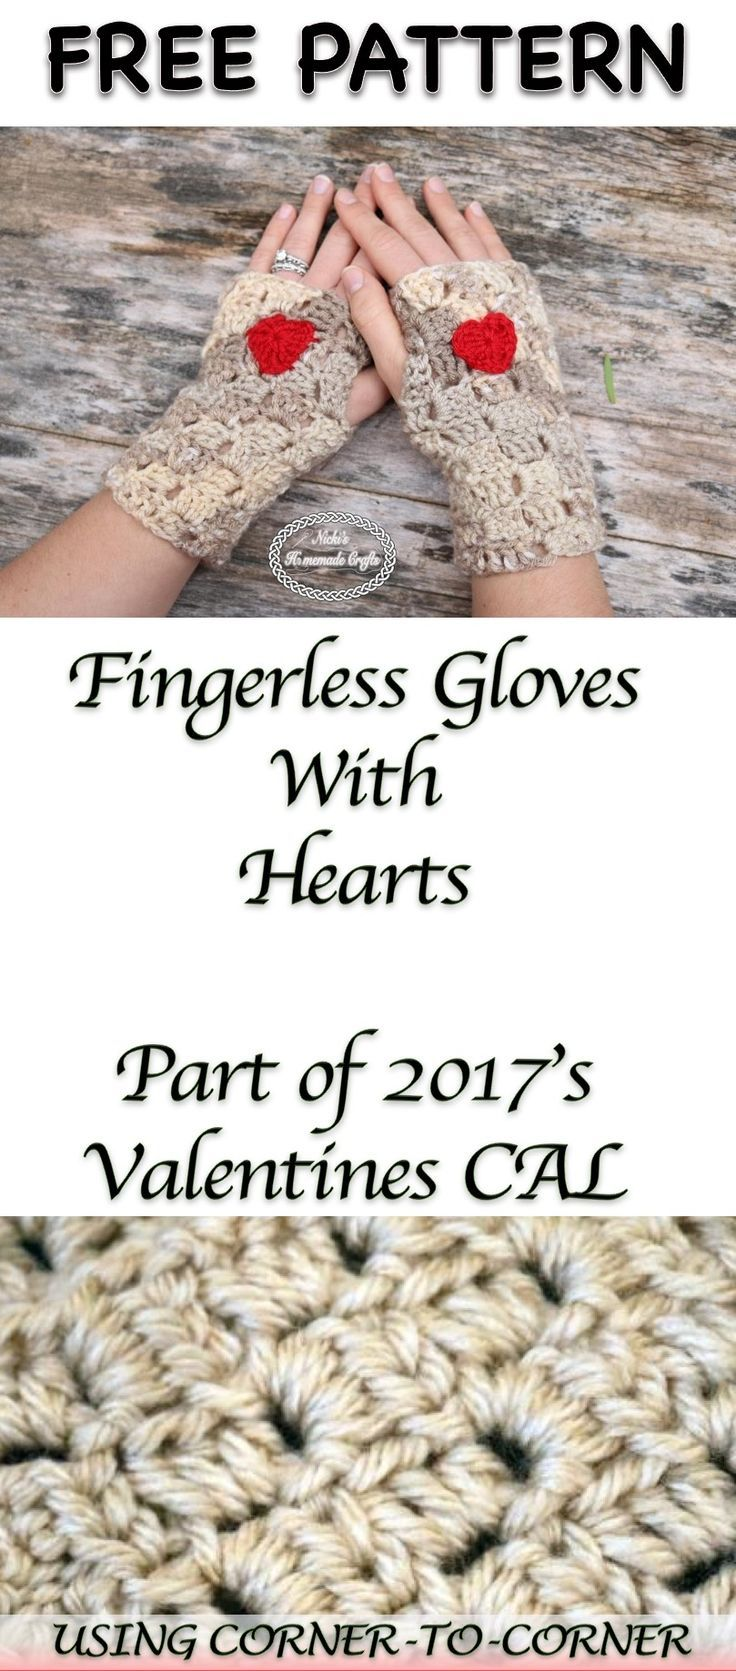 2017 05 fashion flowers to crochet - Fingerless Gloves With Hearts Free Crochet Pattern As Part Of The 2017 S Valentine S Cal By